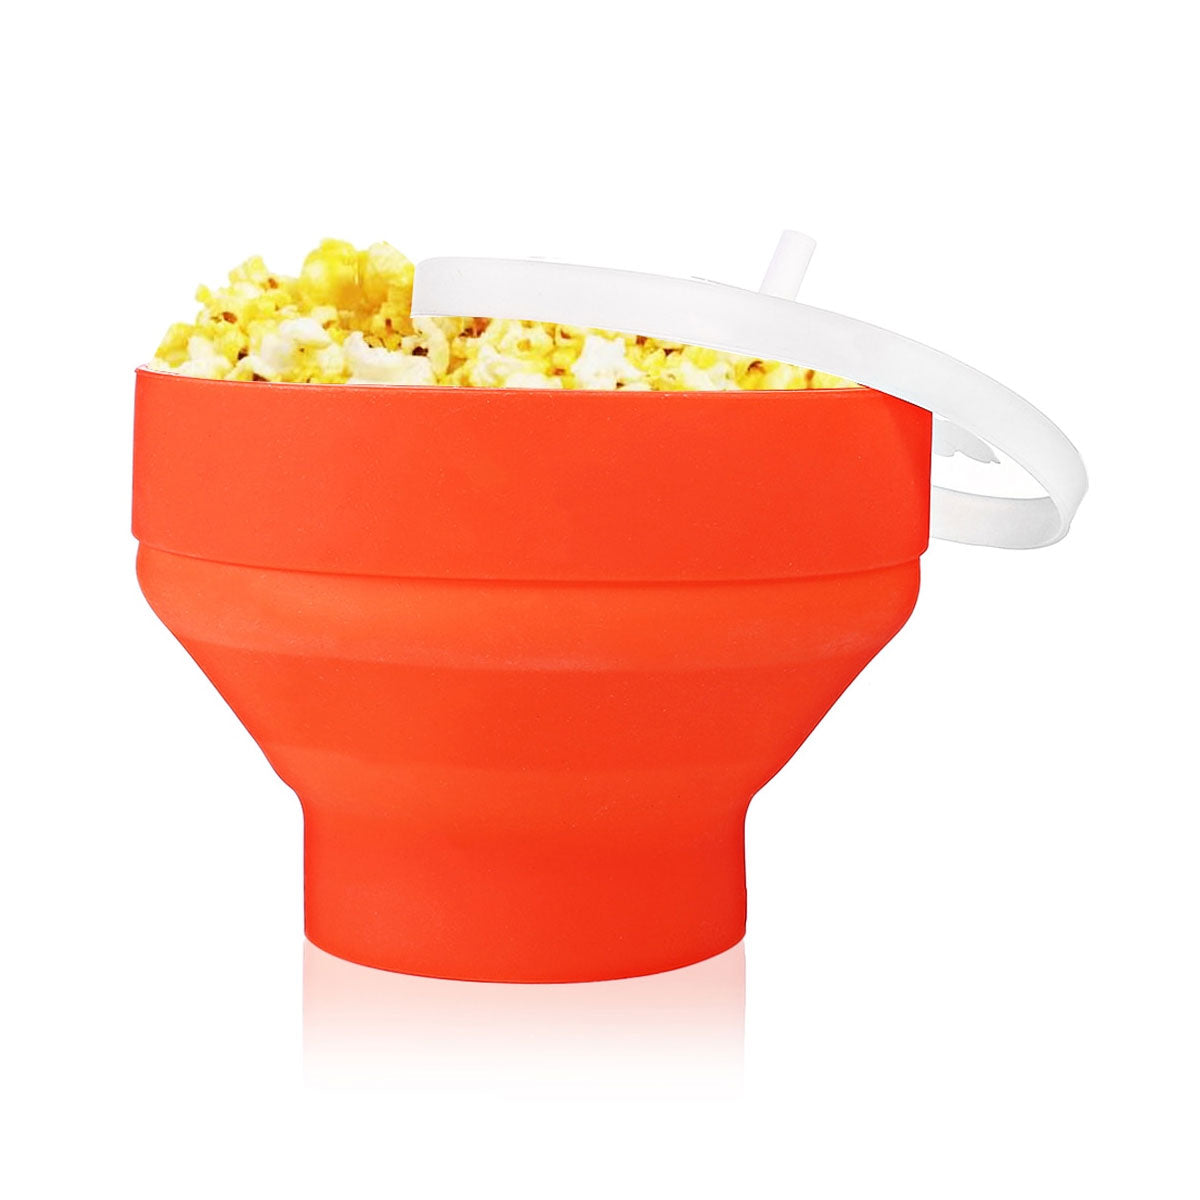 Collapsible Design Microwave Popcorn Maker Made of High-Quality Silicone